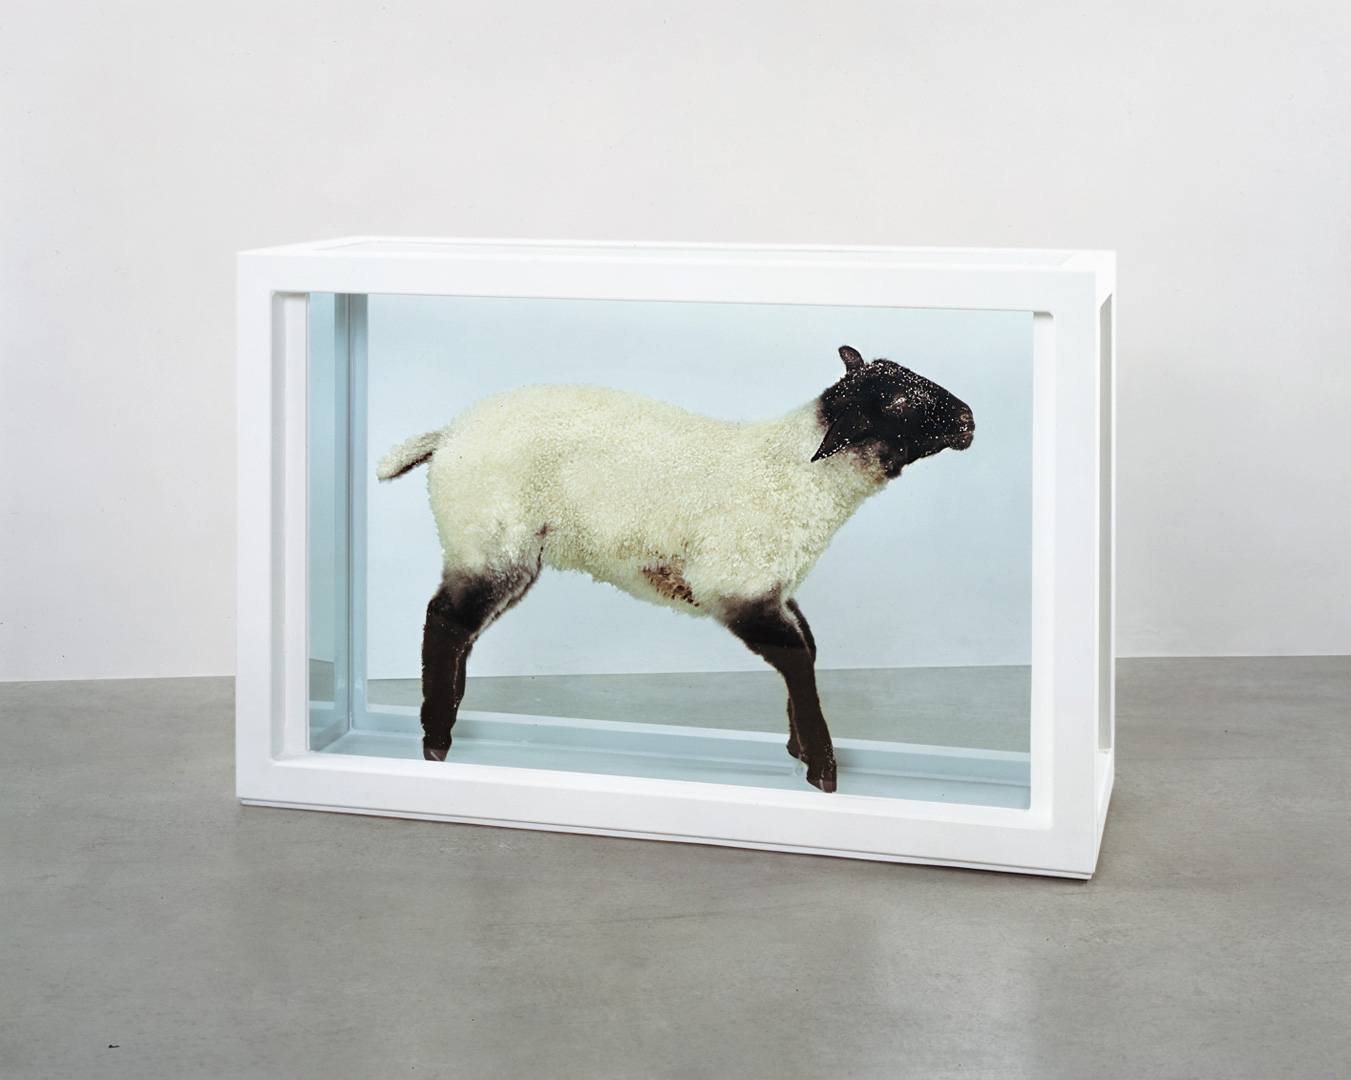 Damien Hirst - Away from the Flock, 1994, glass, painted steel, silicone, acrylic, plastic, lamb and formaldehyde solution